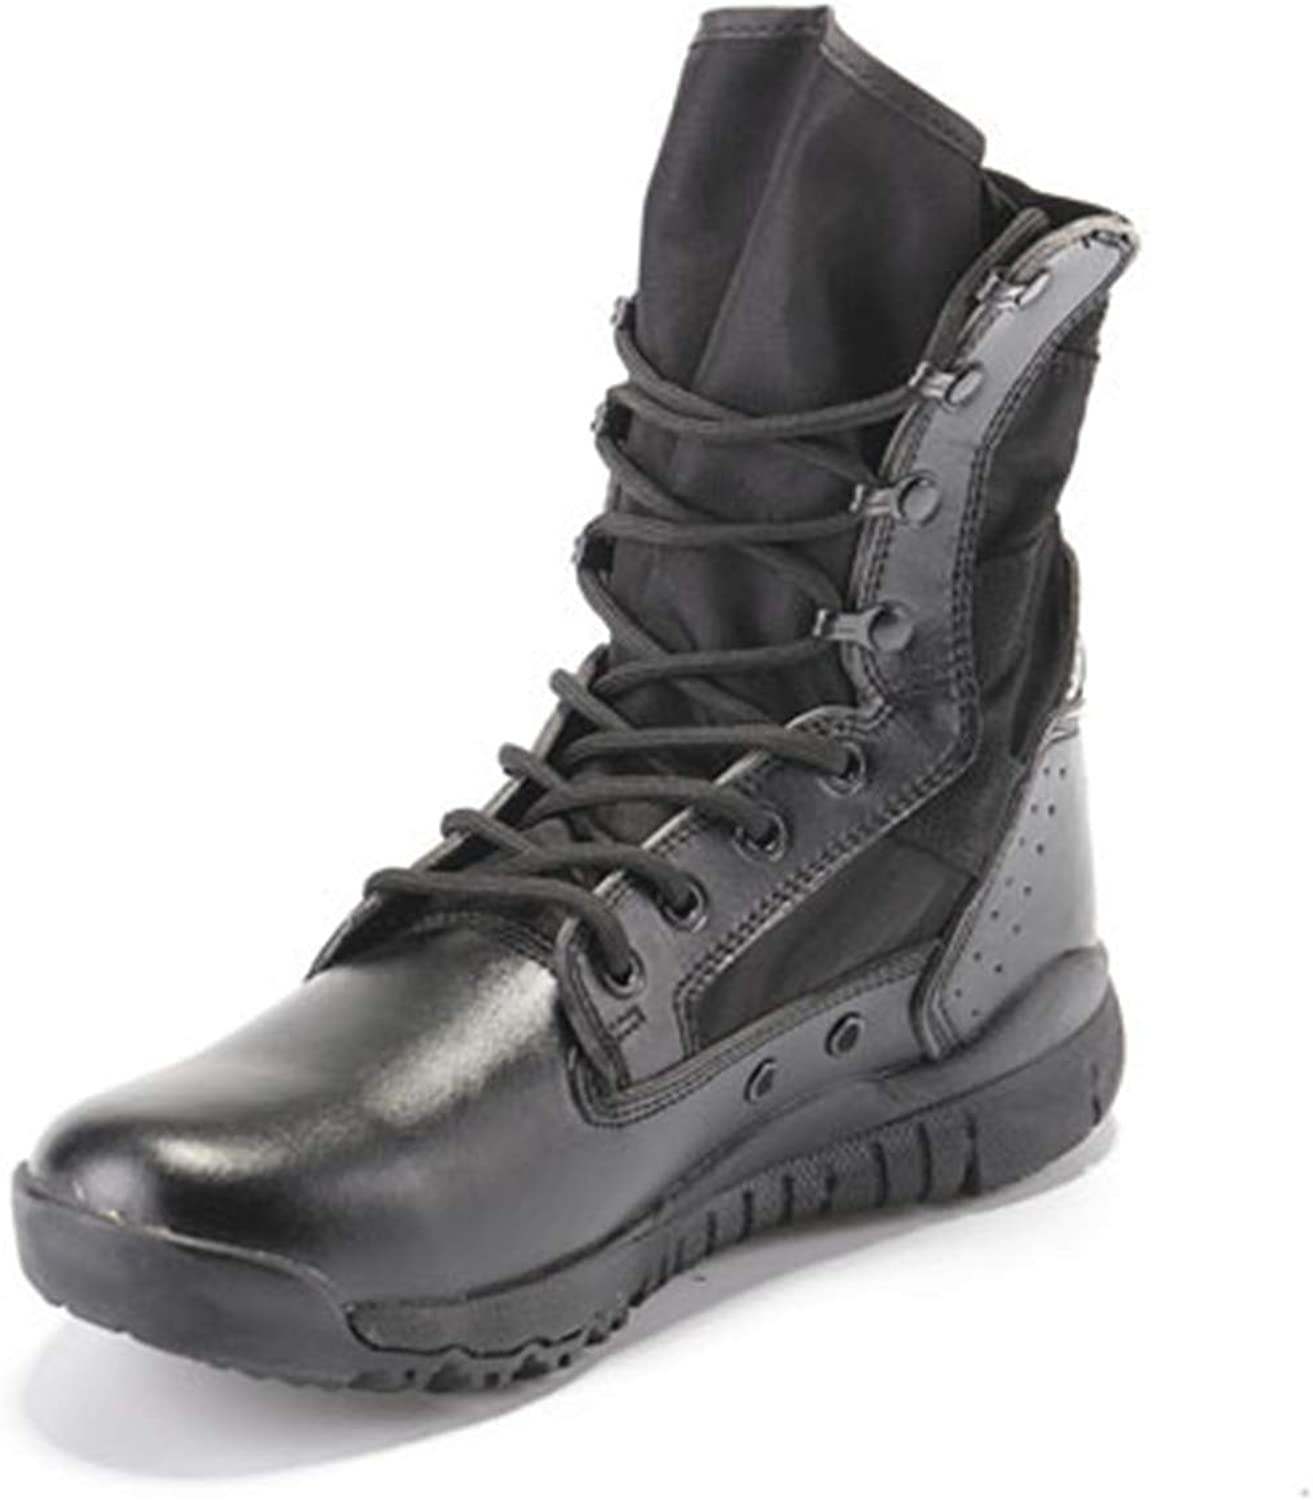 HNGLXQ Combat Boots G-38 Leather Side Zip Army Tactical Boots Delta Military Work Army shoes Safety Ankle Boots Breathable Commando Outdoor Desert Tactical Military Patrol Boots,Black-EU38